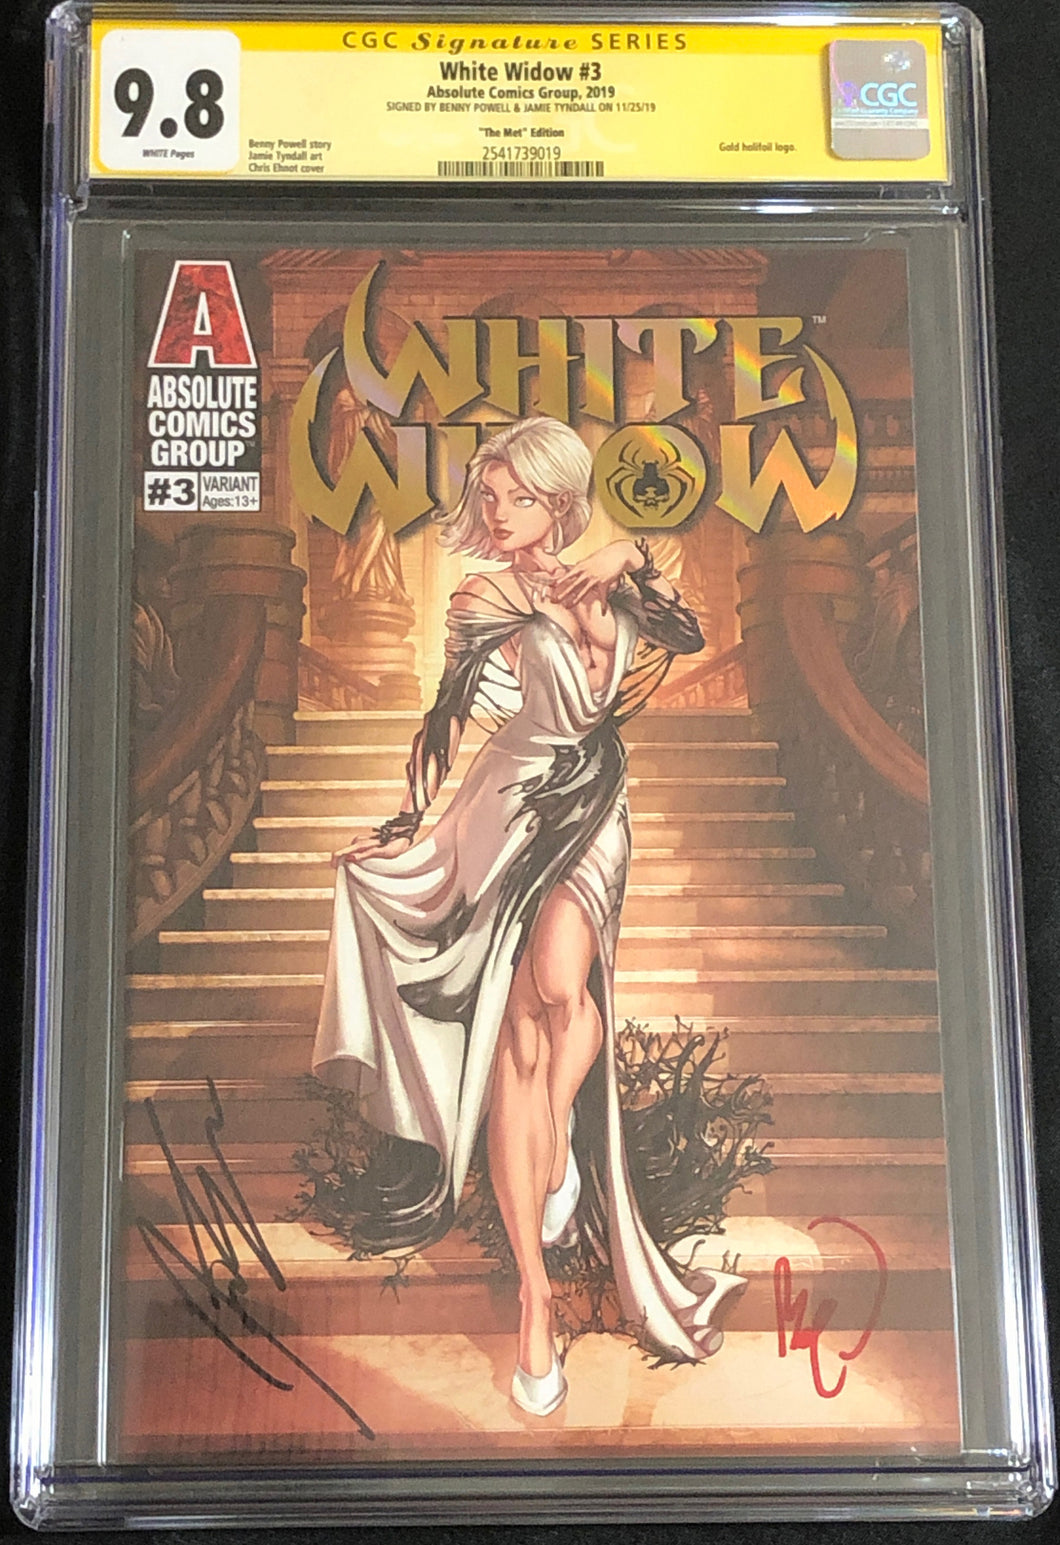 White Widow #3J 9.8 CGC Yellow Label - The Met- Signed